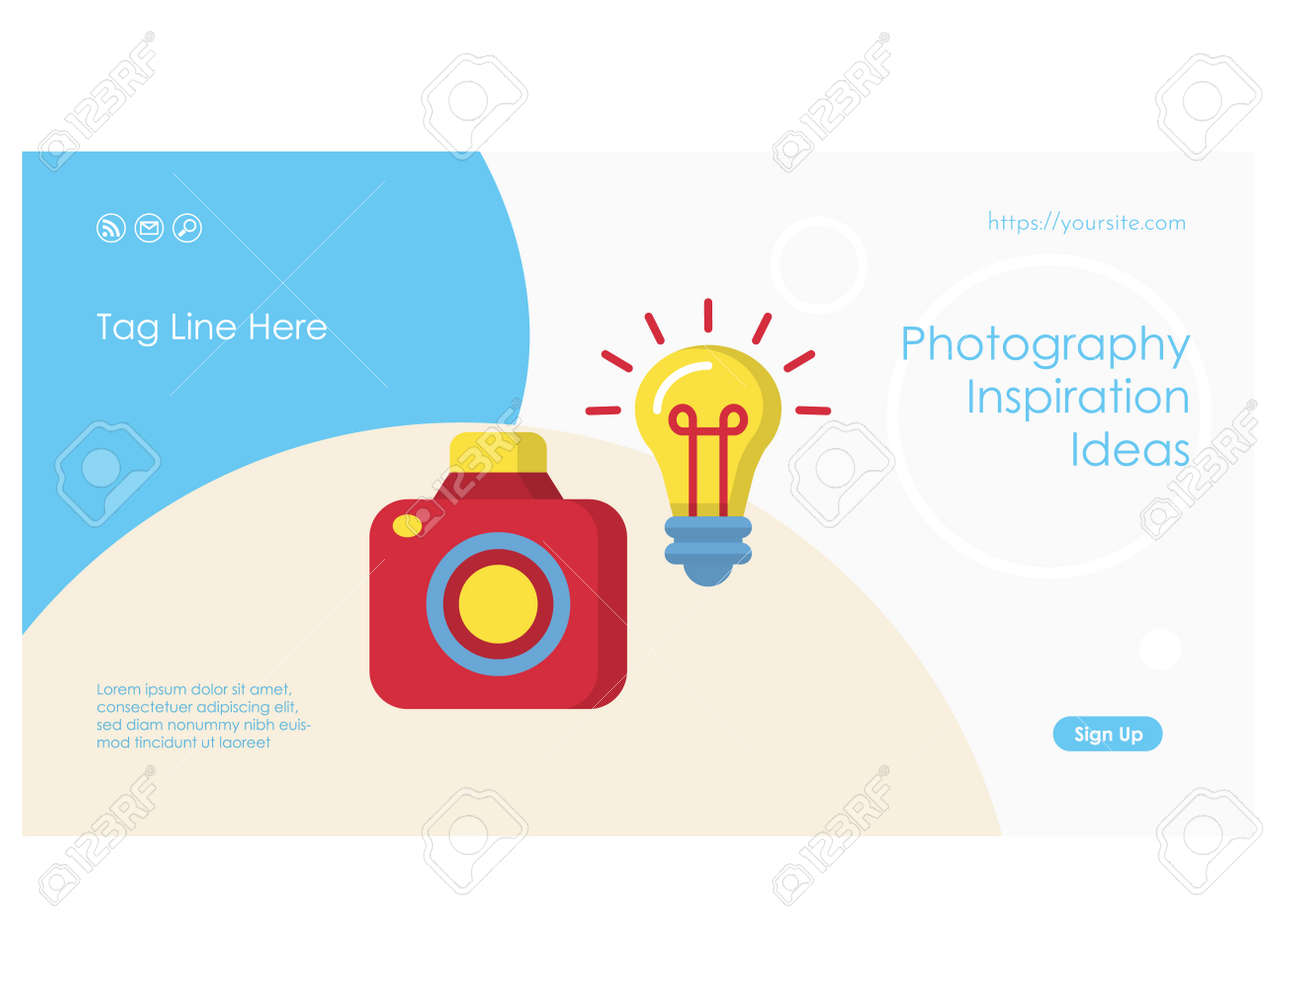 Creative ideas web page or banner flat template - 169164790